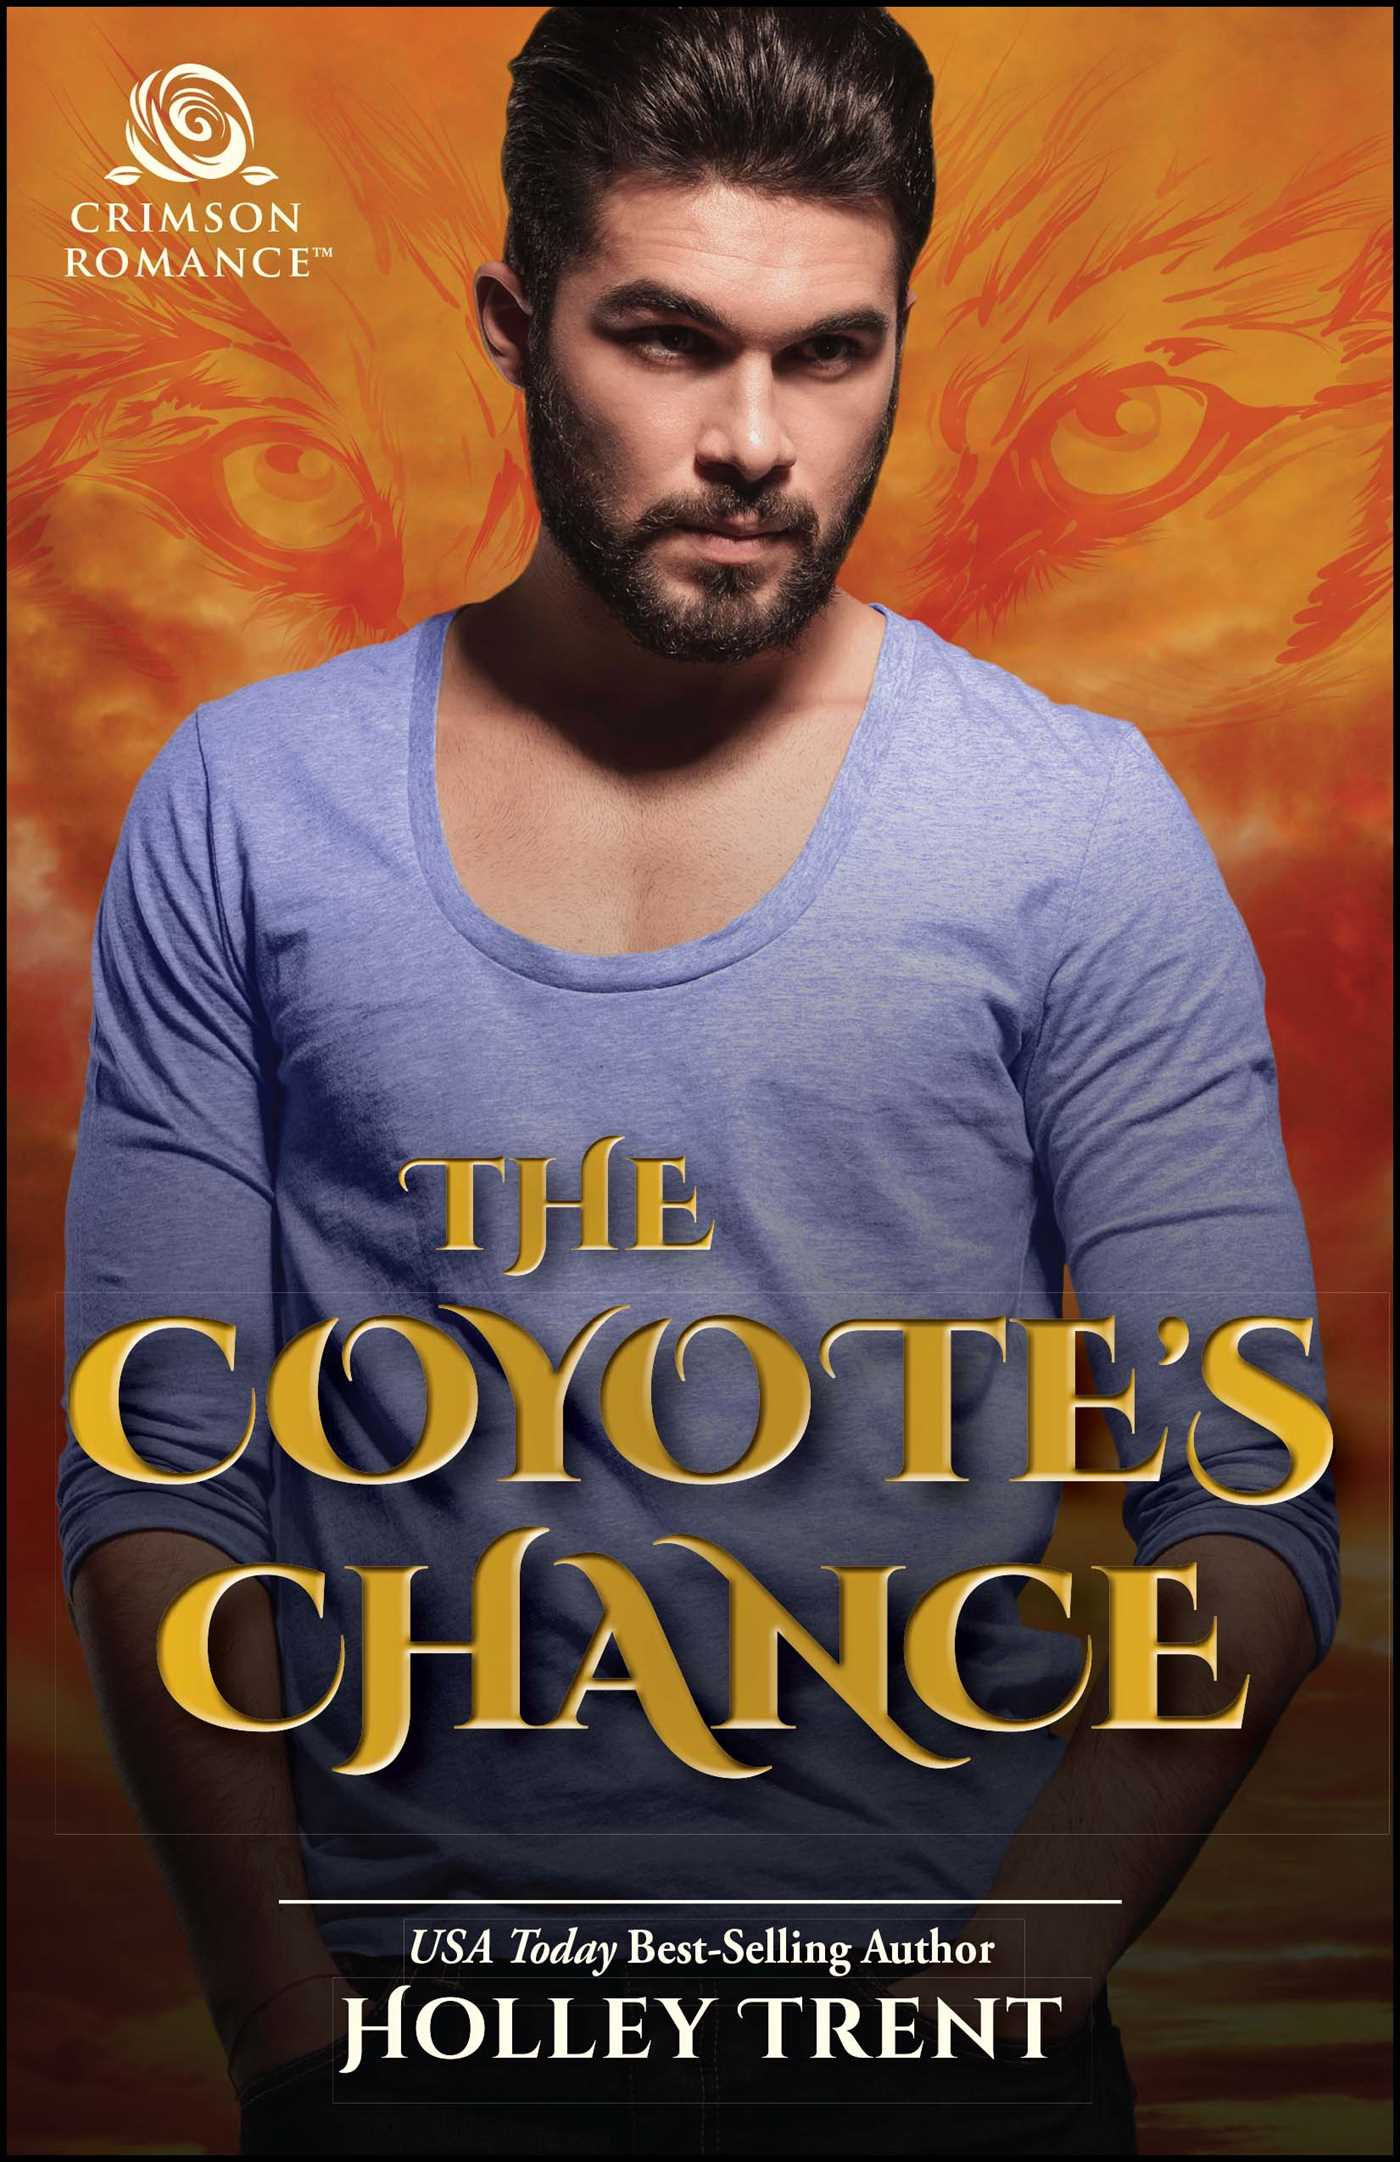 The coyotes chance 9781507208540 hr